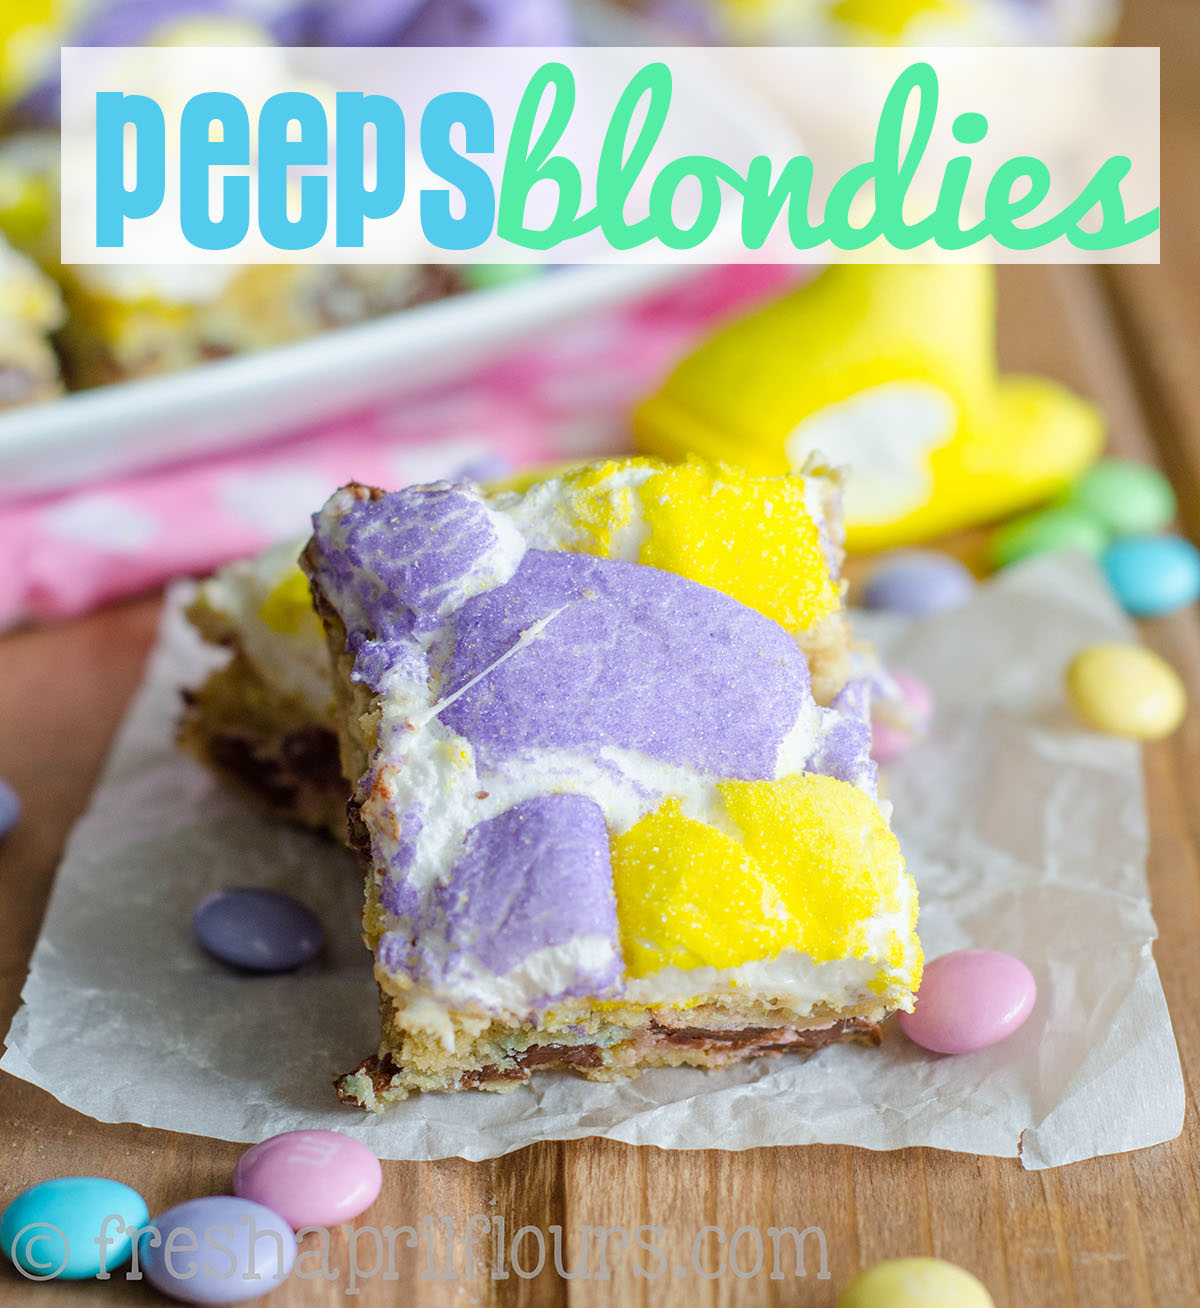 Peeps Blondies: Buttery, chewy blondies filled with milk chocolate m&m's and topped with gooey, melted Peeps. Perfect for Easter!